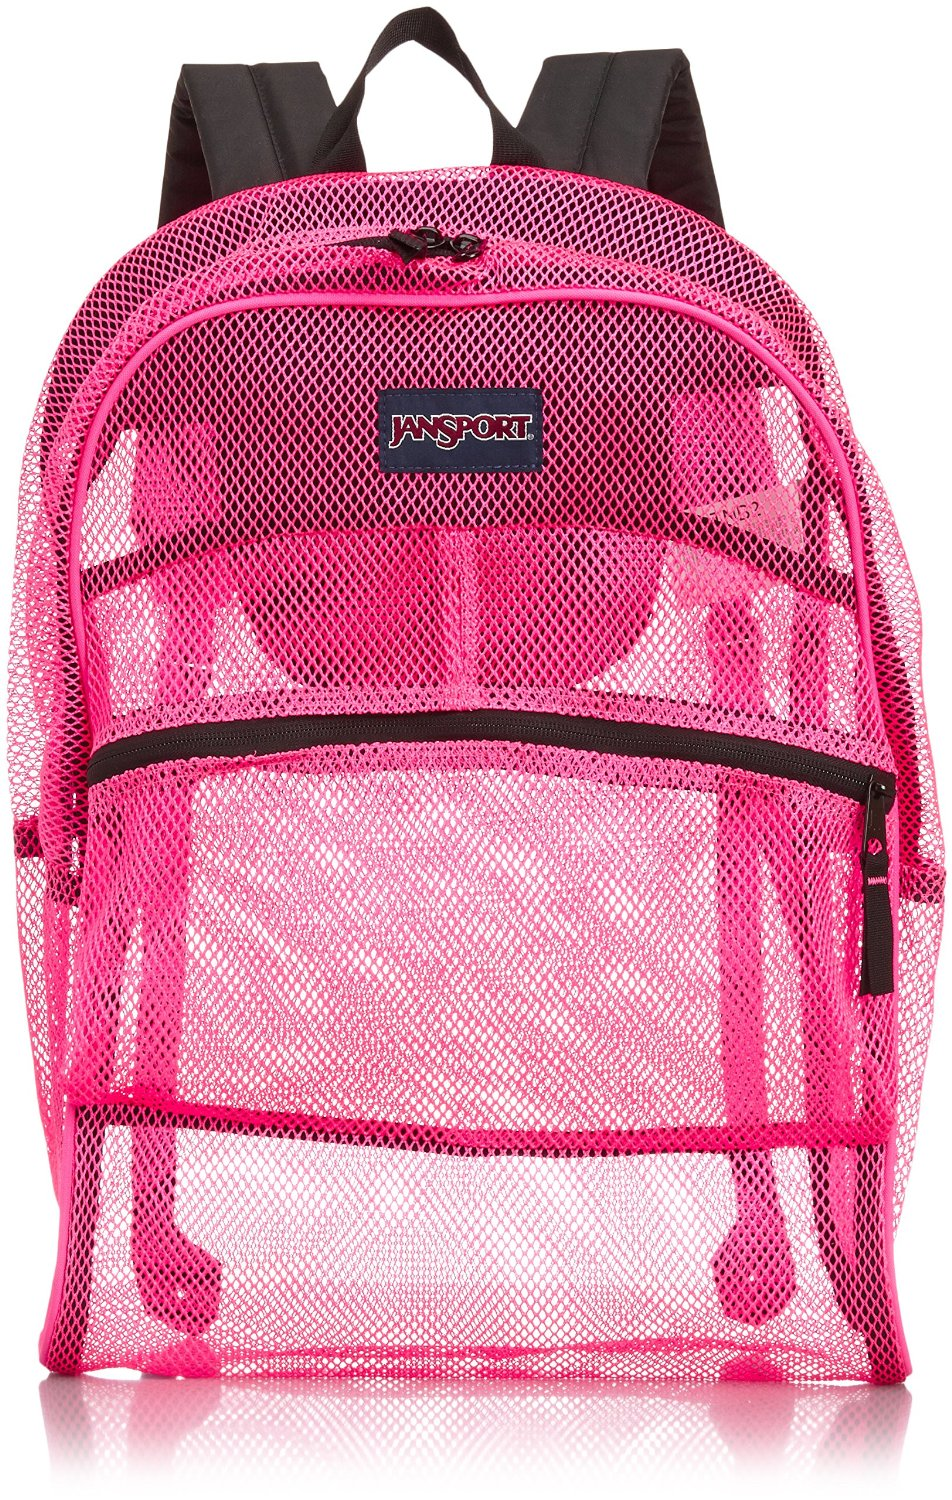 60053fdfc685 Get Quotations · JanSport Unisex Mesh Pack